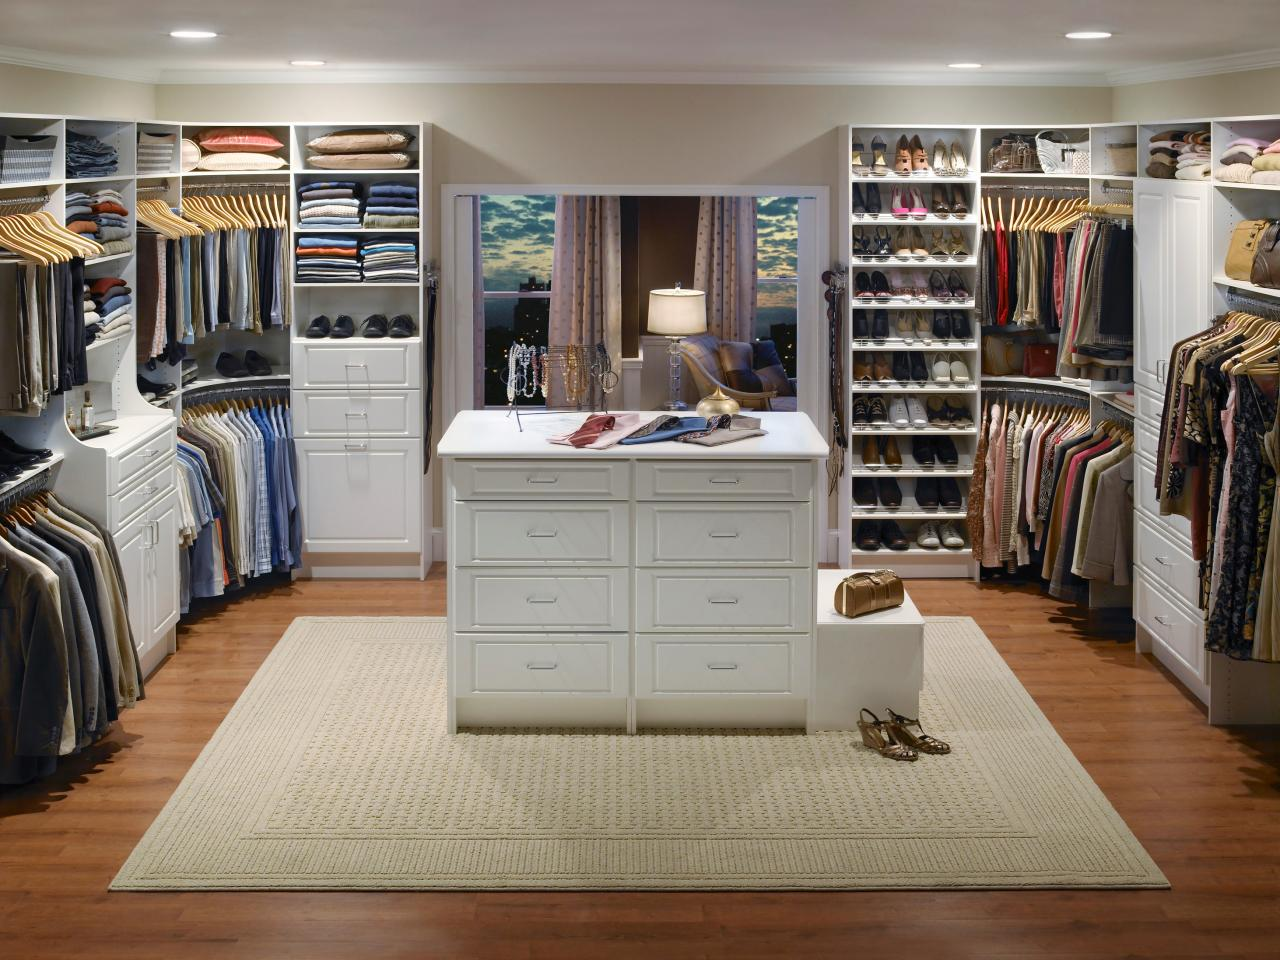 Walk in closet design ideas hgtv for Walk in closet remodel